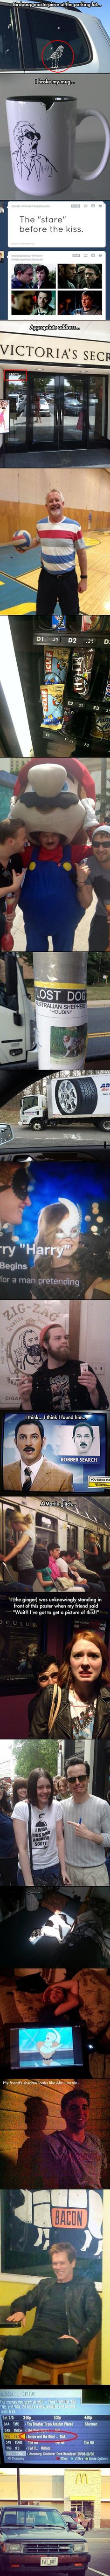 We have rounded up some unintentionally ironic pictures captured at the perfect time.